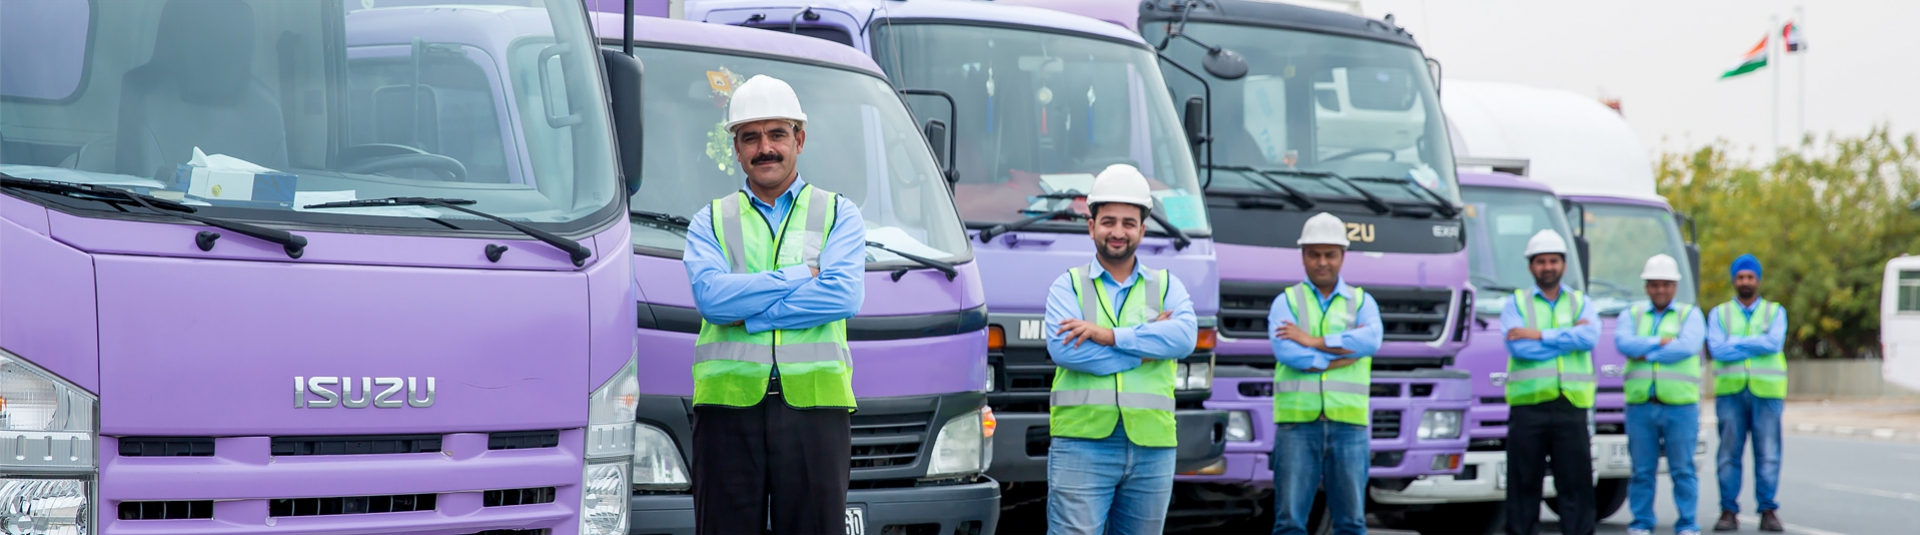 Freight Services, Logistic Solutions Provider in JFZA, Dubai, UAE